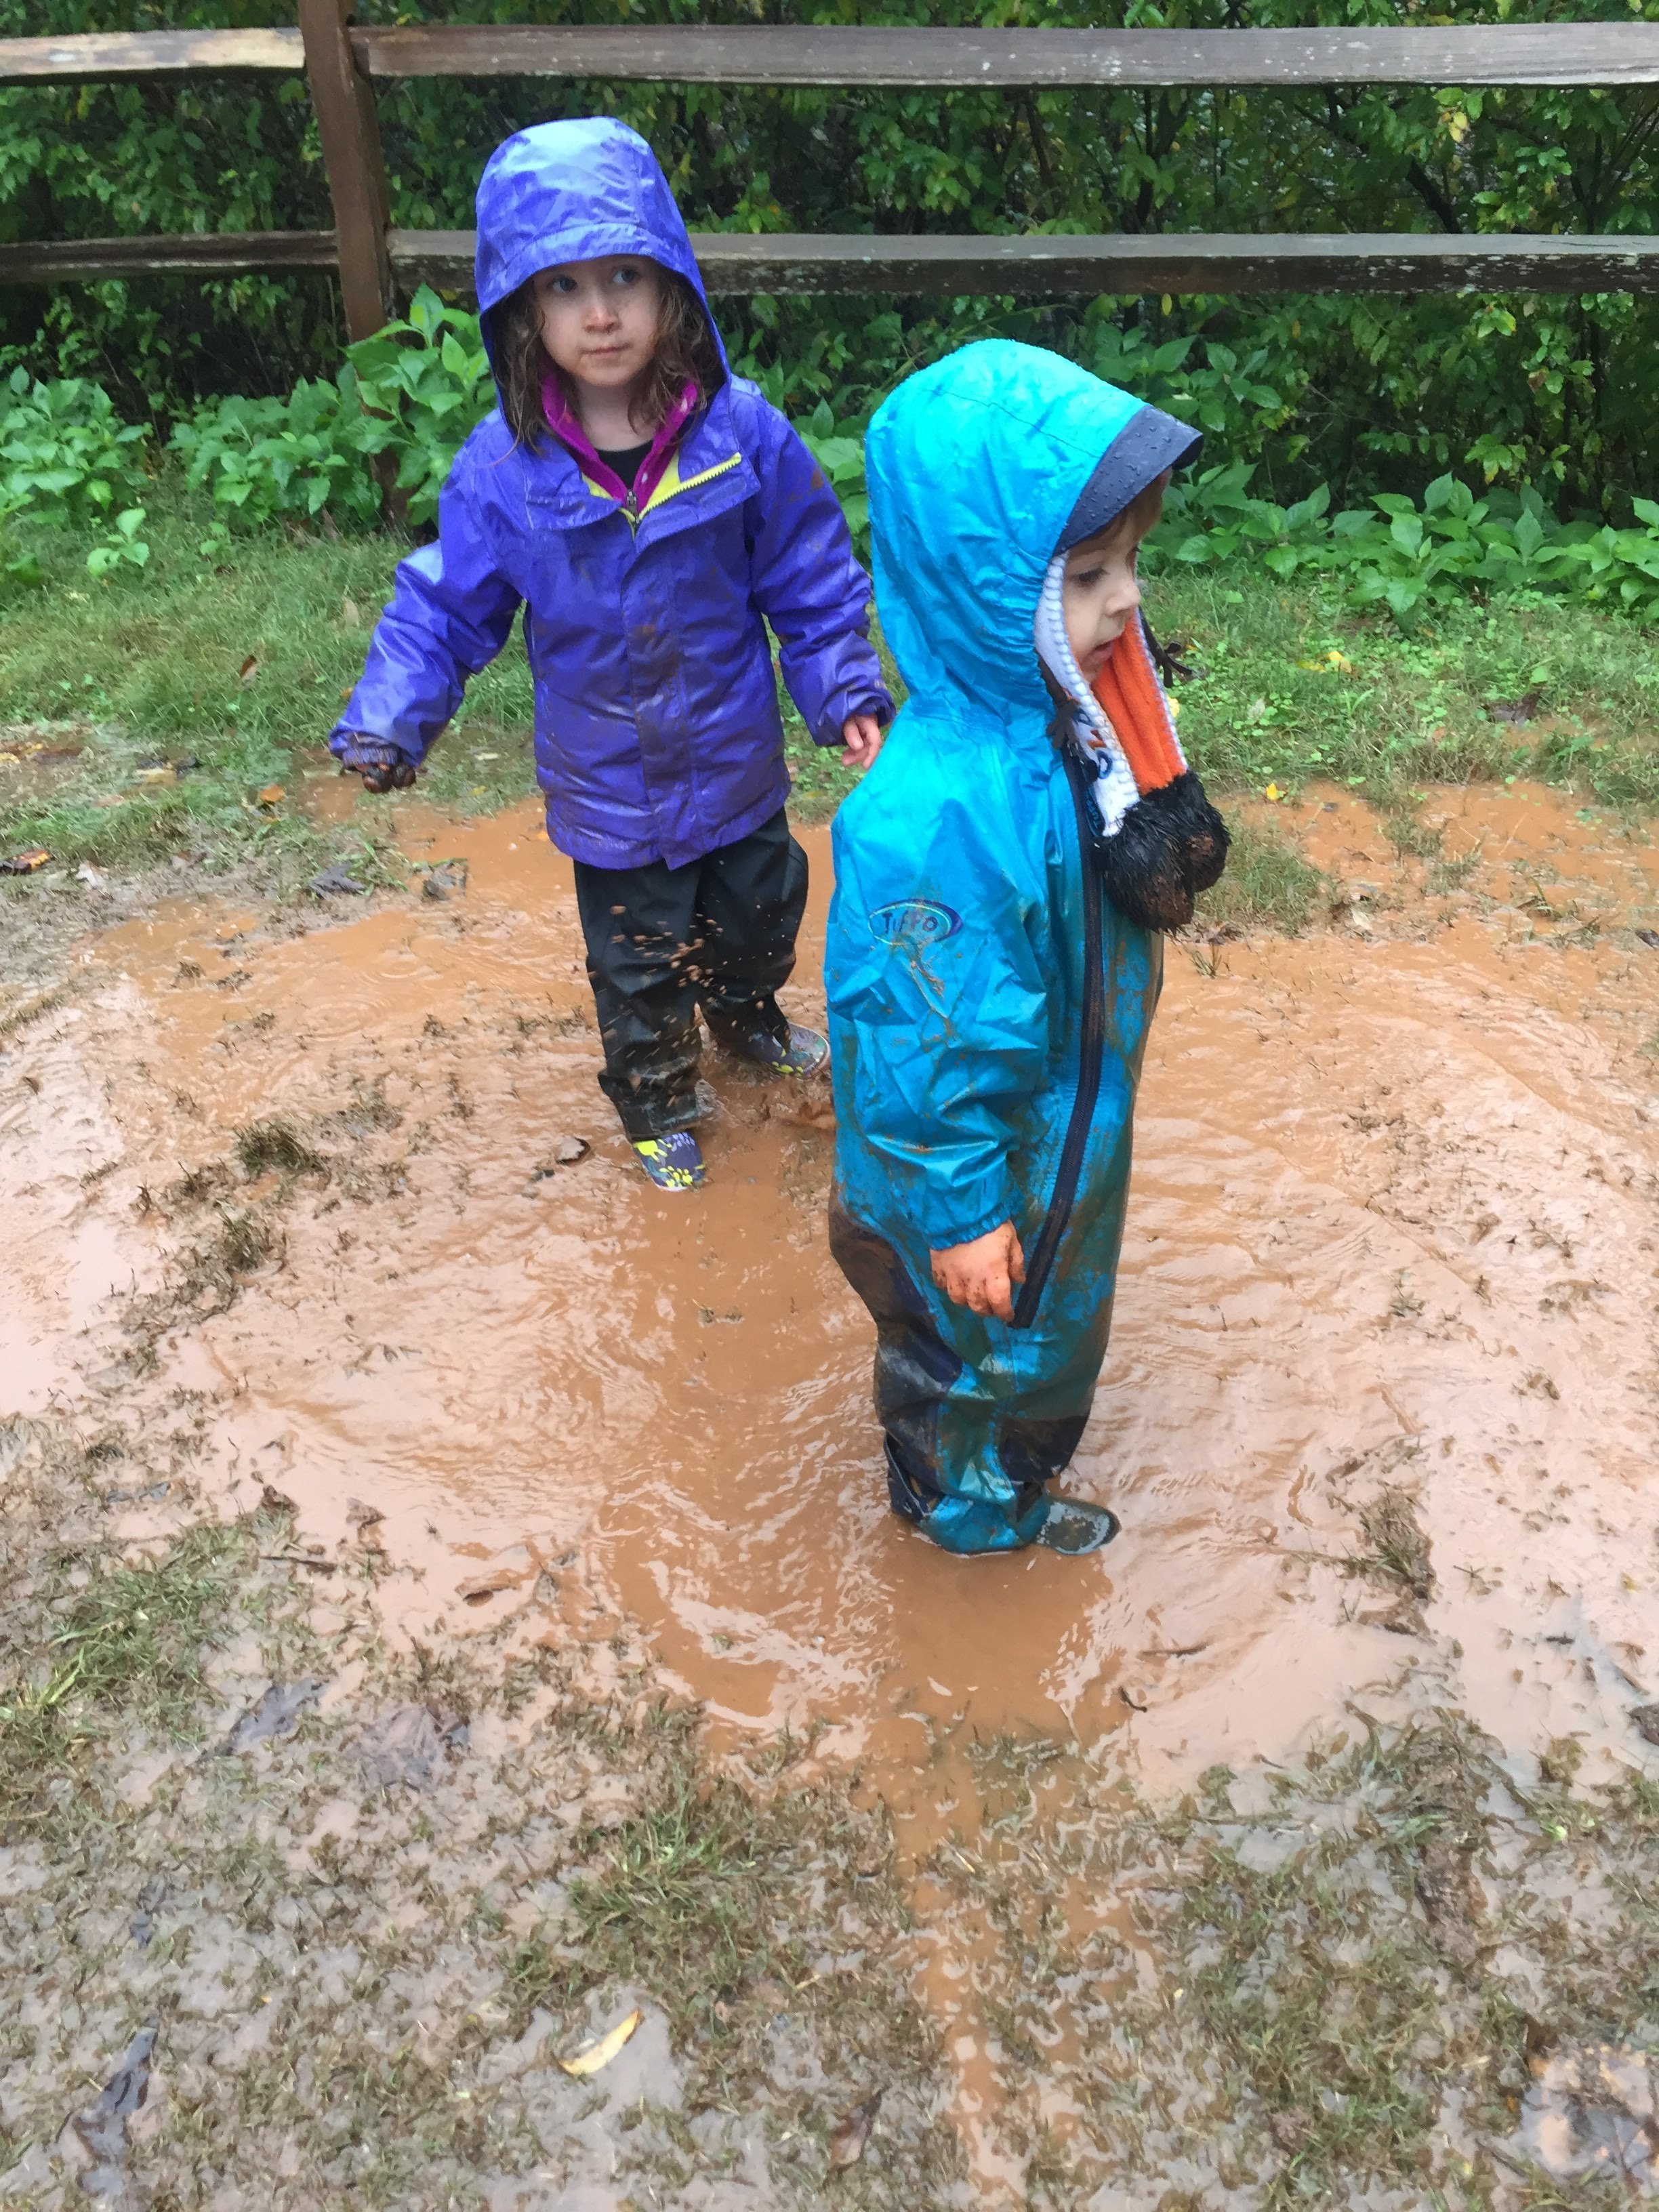 The children dawdled in puddles to delay going inside. Fine by us <3 We love to see this!